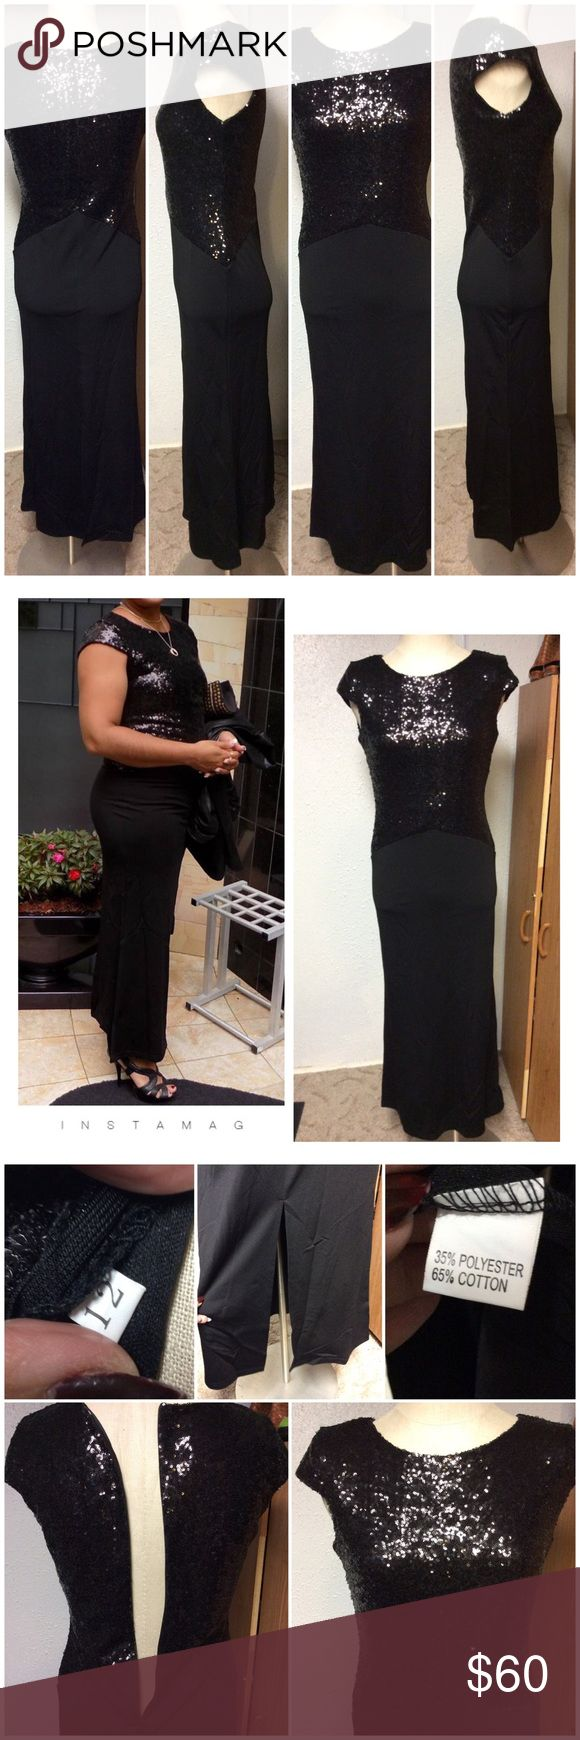 Boutique Dress Size 10. No brand. Worn once by me on a cruise for a formal dinner for 2 hours. Pull on over head style. Says 12 but runs small. Nicole's Resale Dresses Maxi